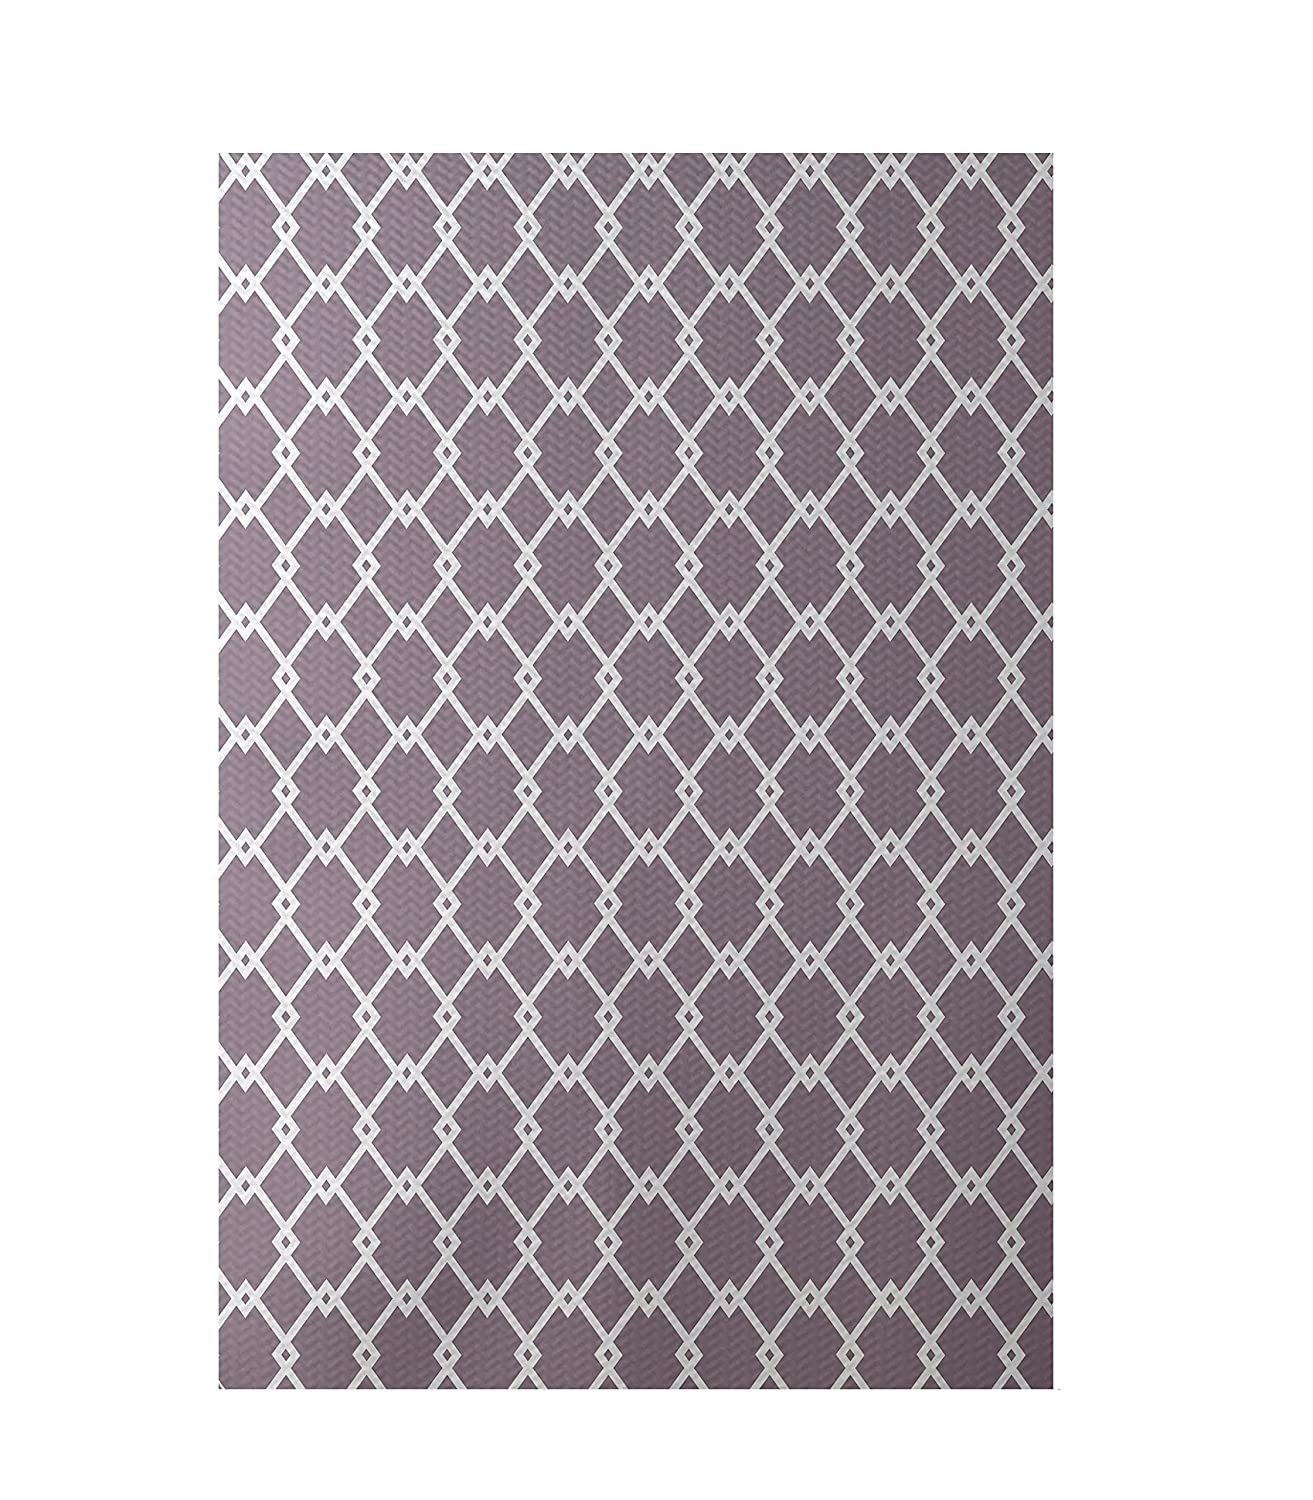 E by design RGN104PU14-23 Link Lock Geometric Print Indoor/Outdoor Rug, Smog